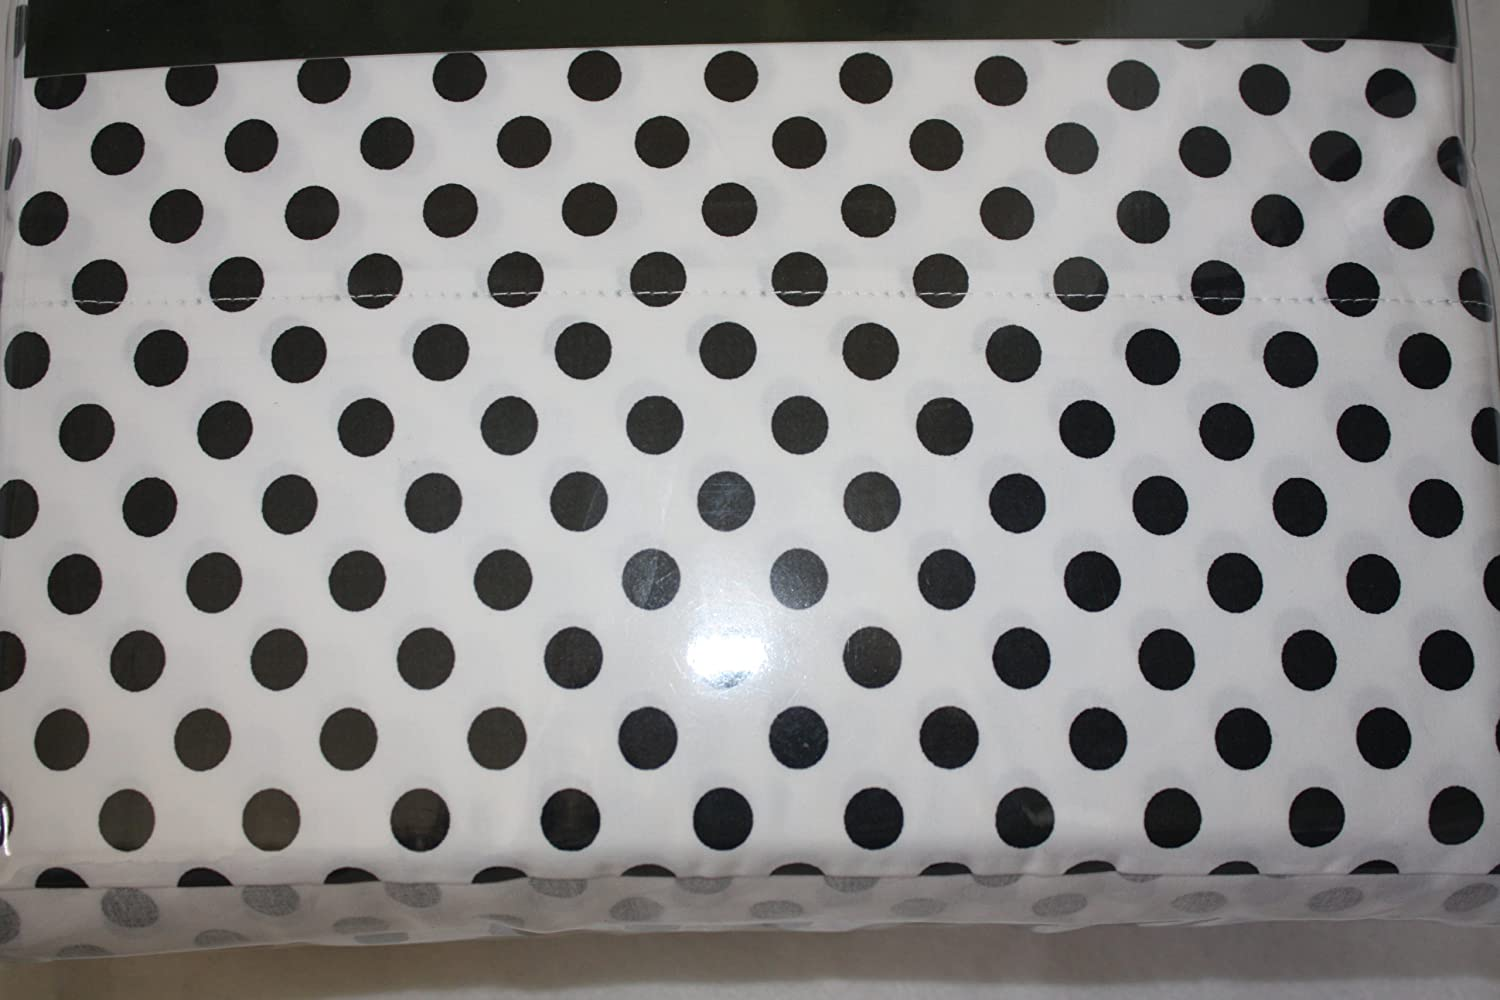 amazoncom ralph lauren black and white queen polka dot sheet set home u0026 kitchen